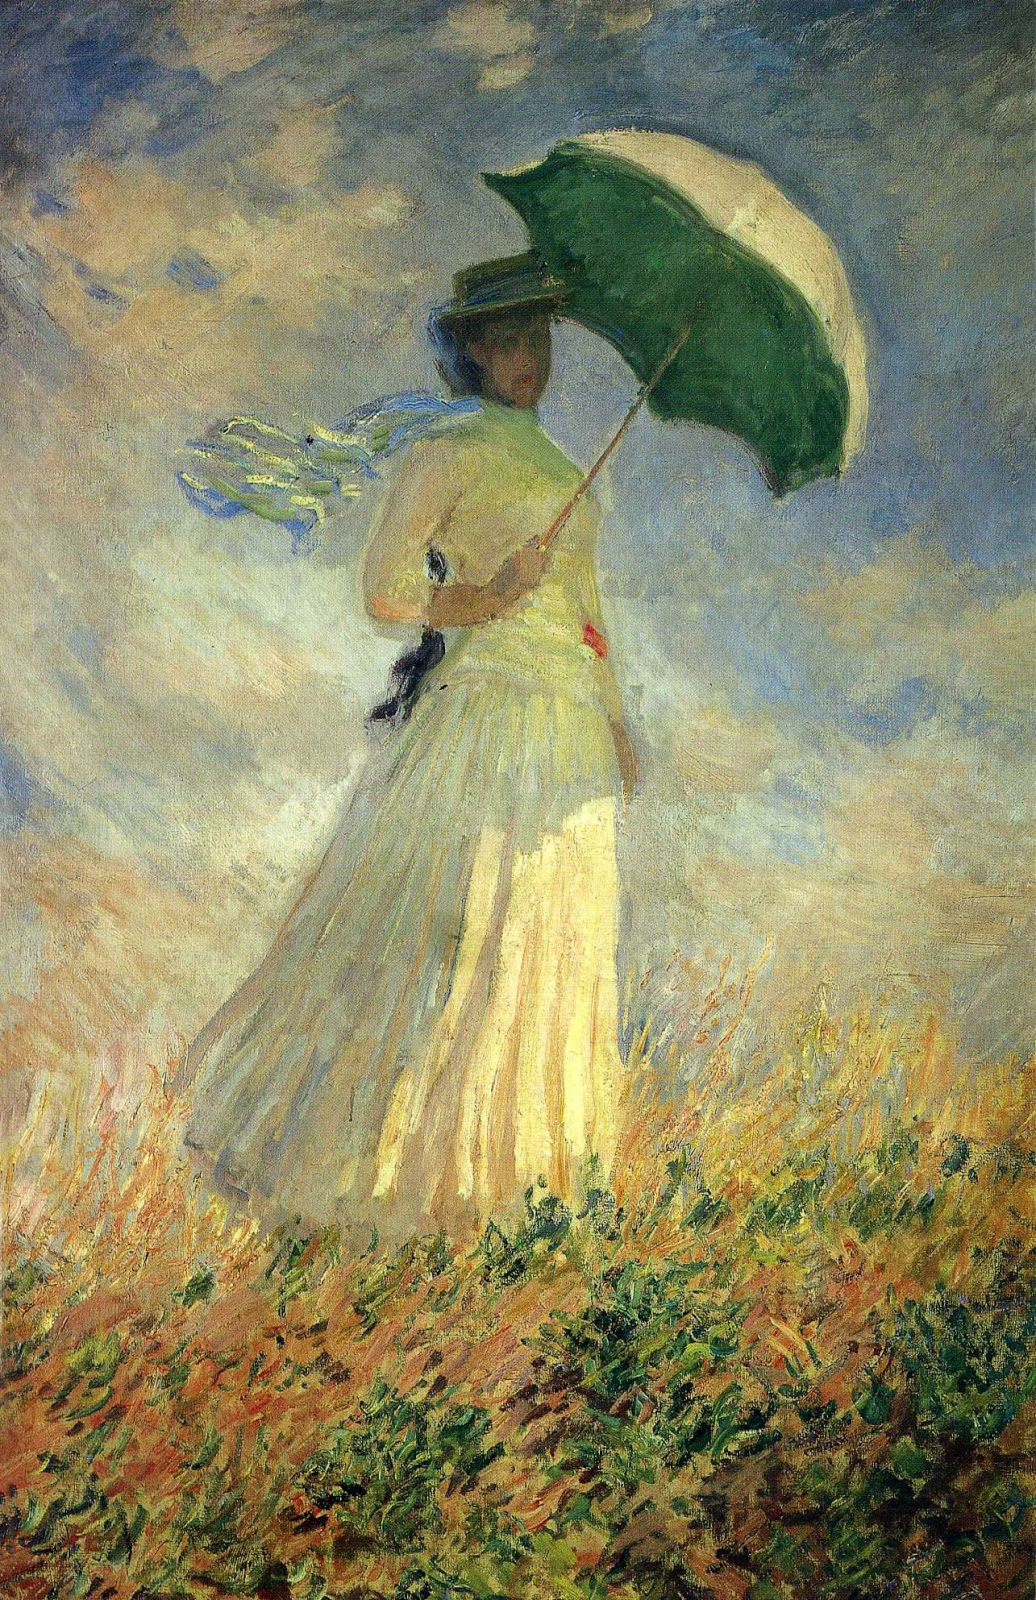 art artists claude monet part  claude monet 1886 w a parasol oil on canvas 130 5 x 89 3 cm museacutee d orsay paris